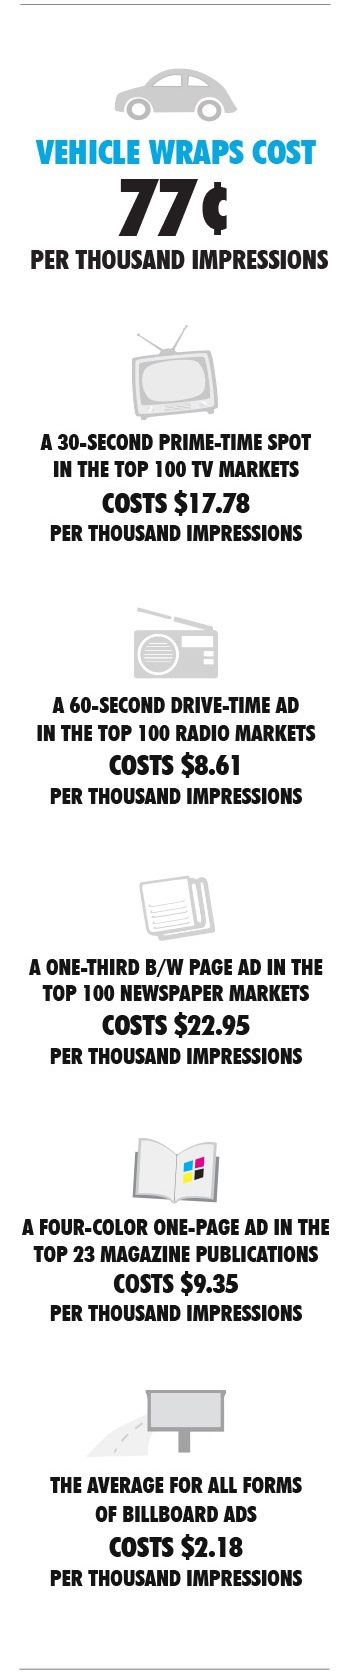 Just a few reasons why using a wrapped vehicle is one of the best forms of advertising!